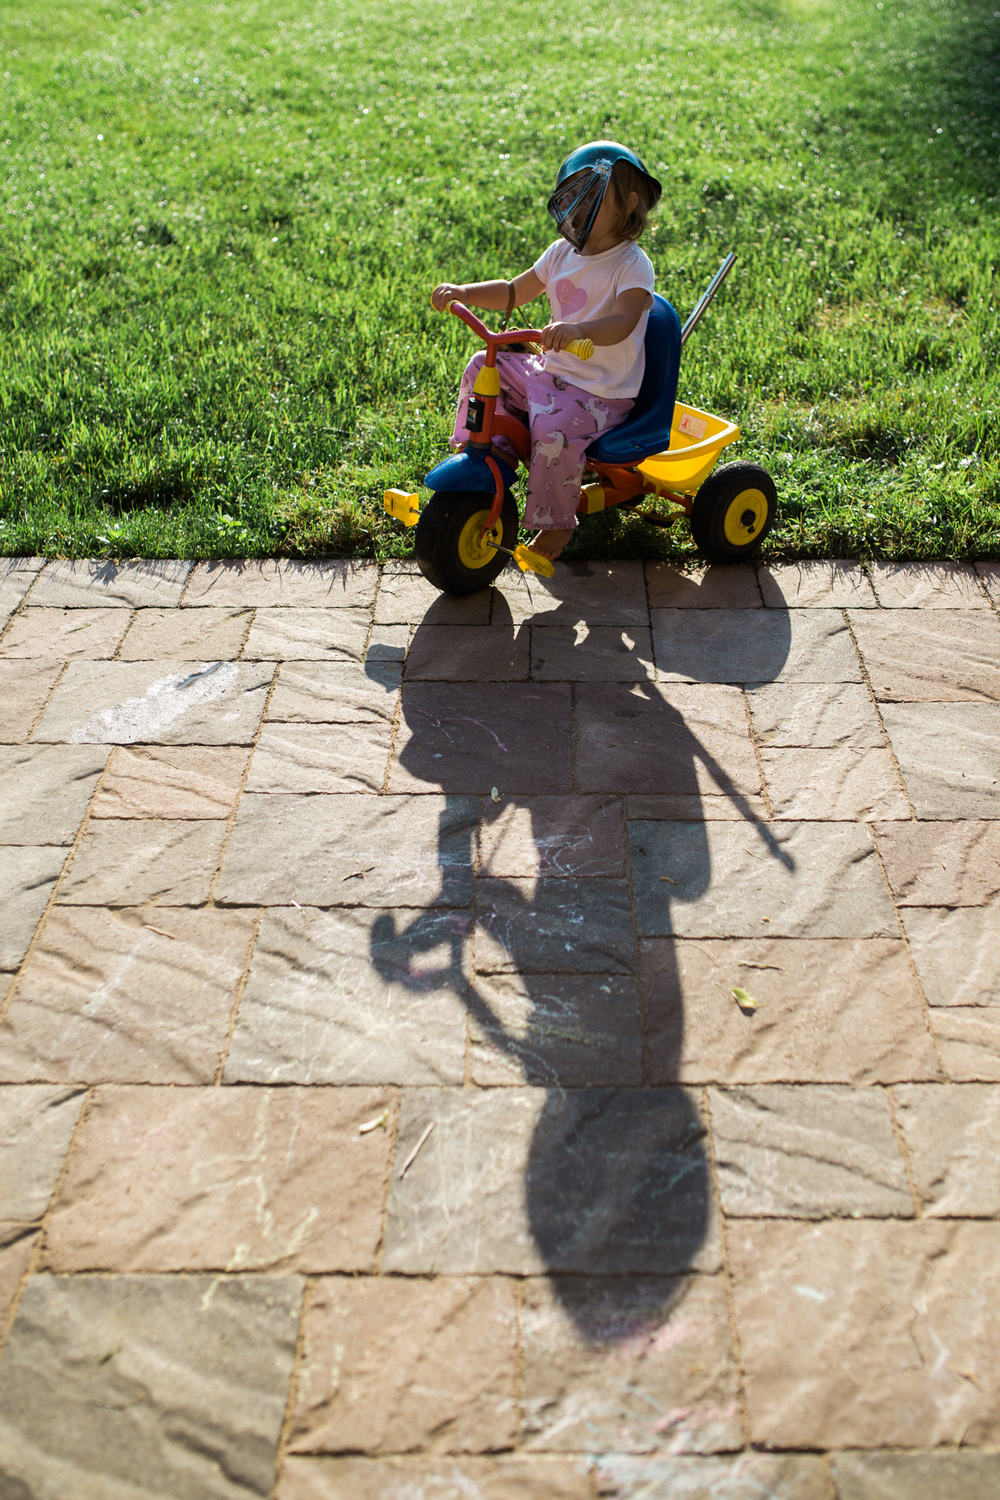 I just love these shadows. Morning sunlight can be fun too!